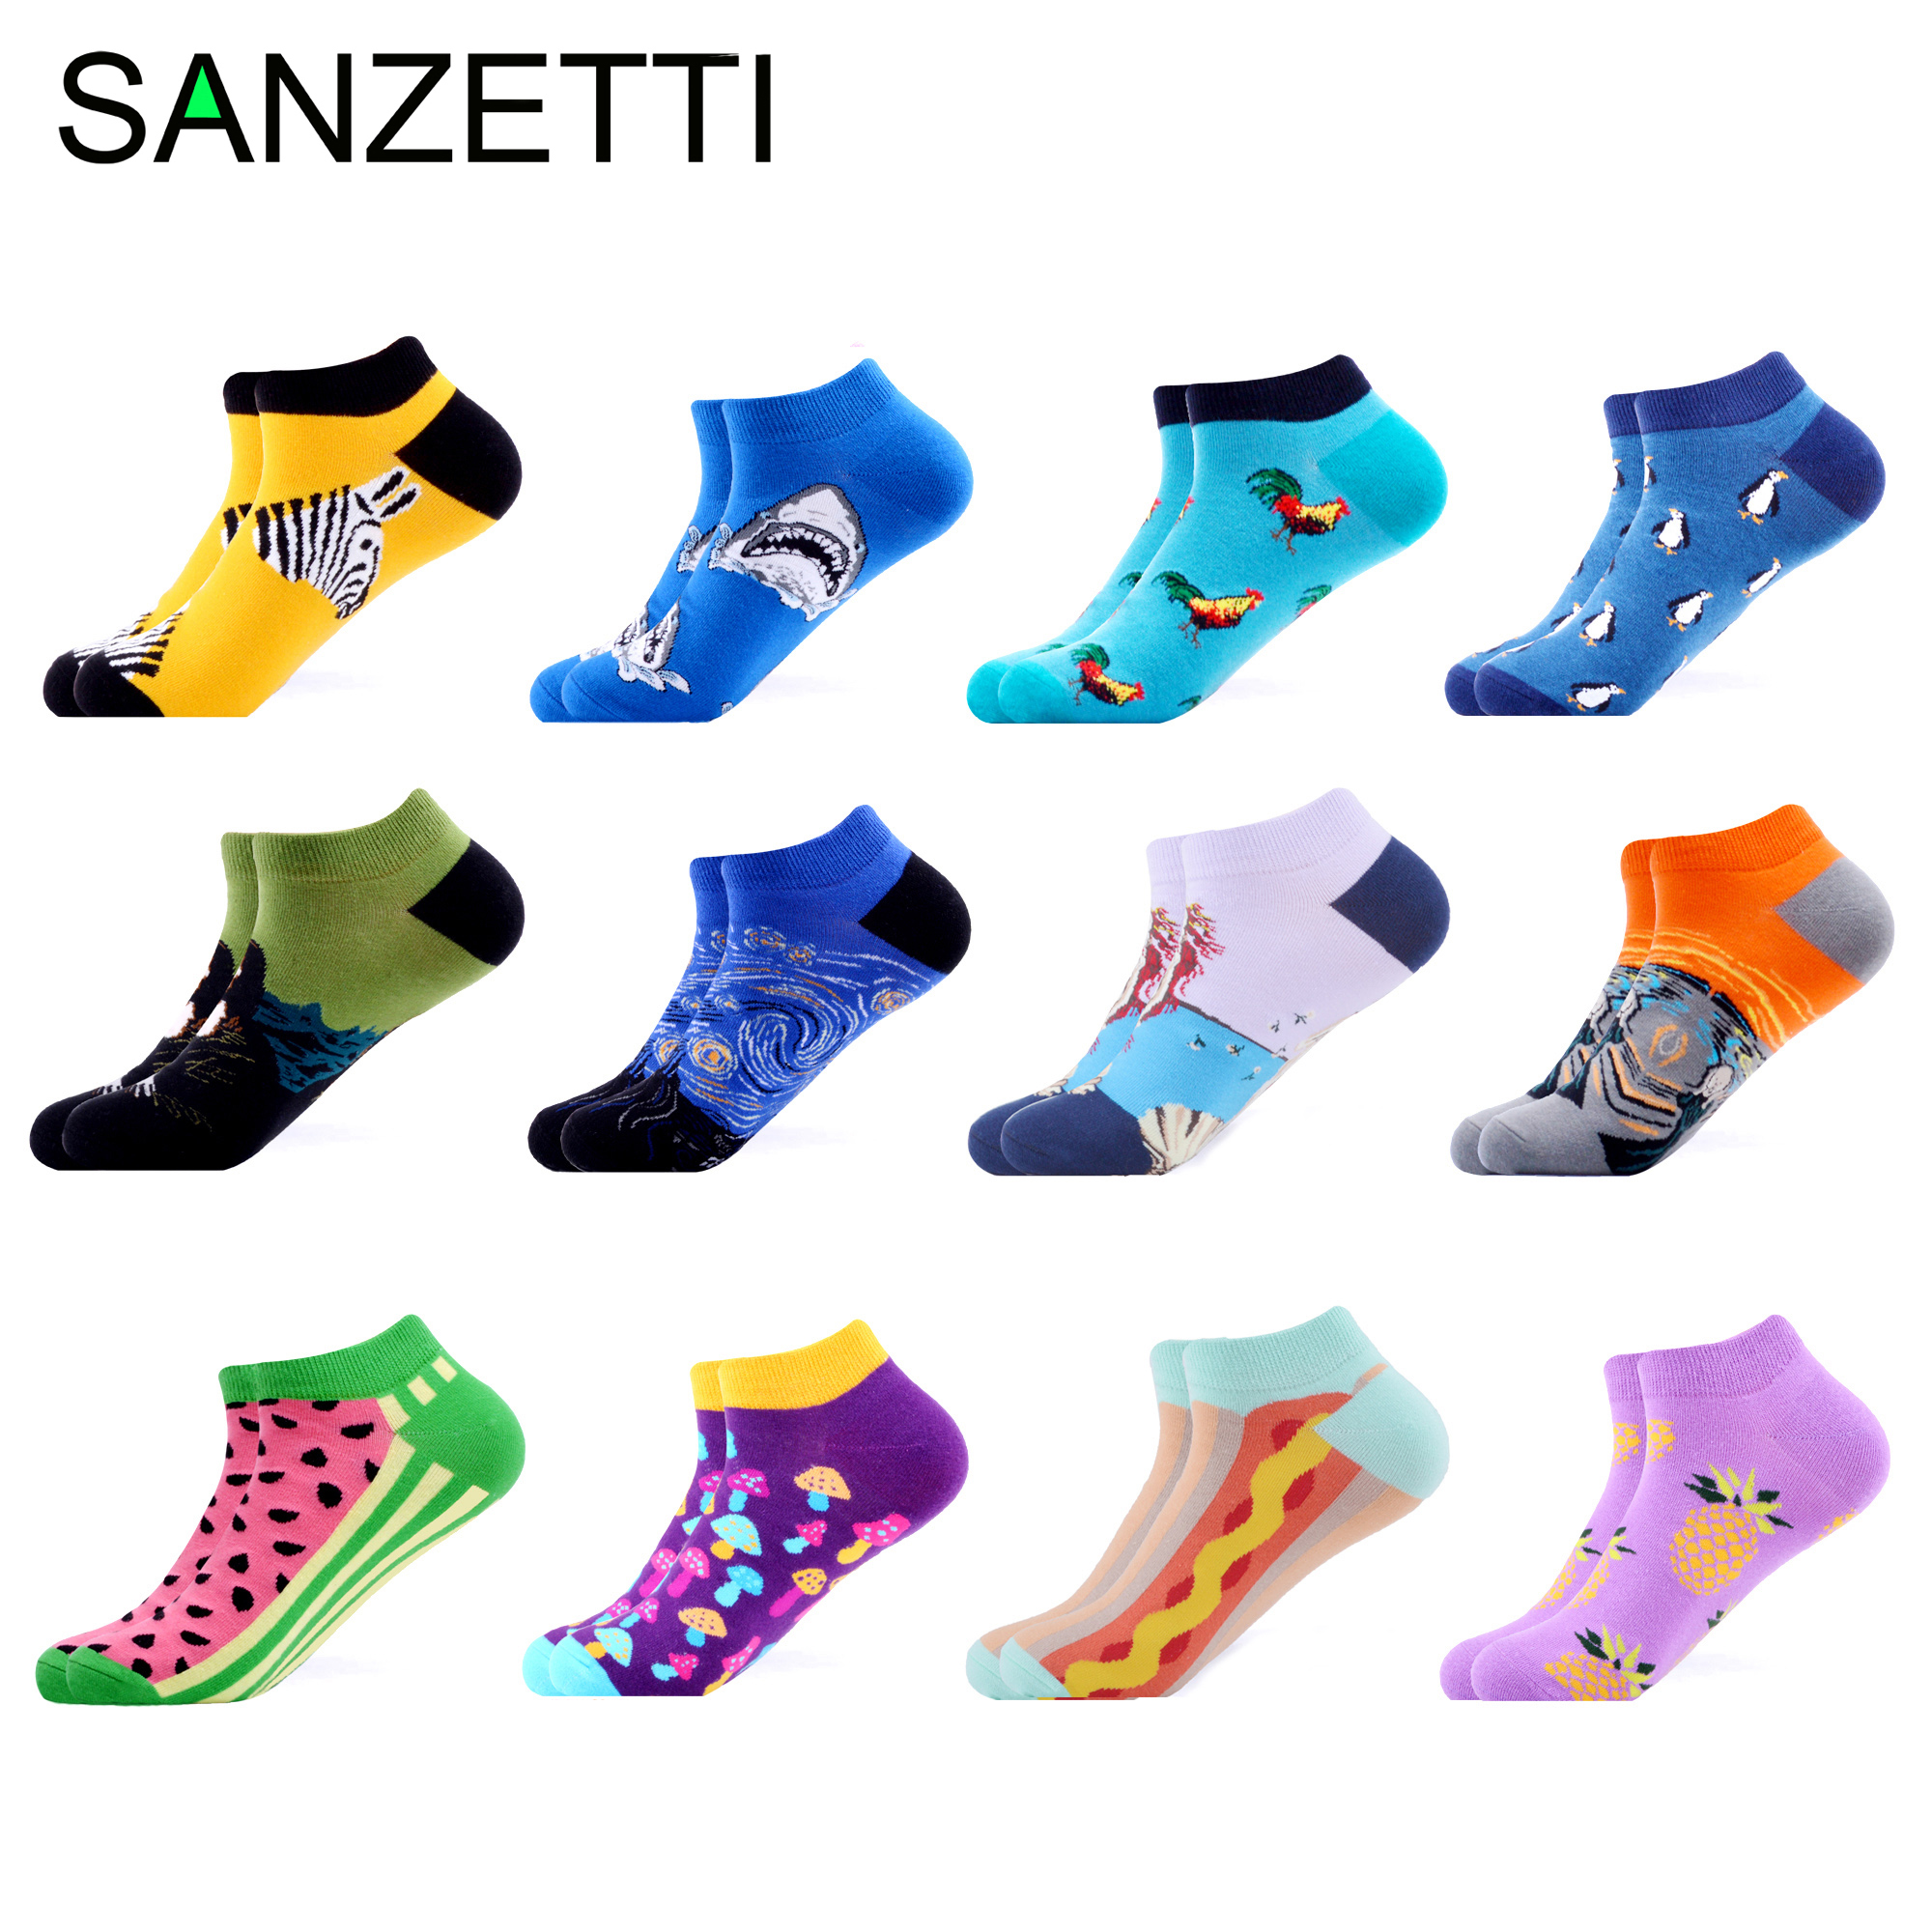 SANZETTI Hot Sale 12 Pairs Of Summer Ankle Socks Colorful Fun Shark Corn Wave Multiple Patterns Happy Combed Cotton Male Socks